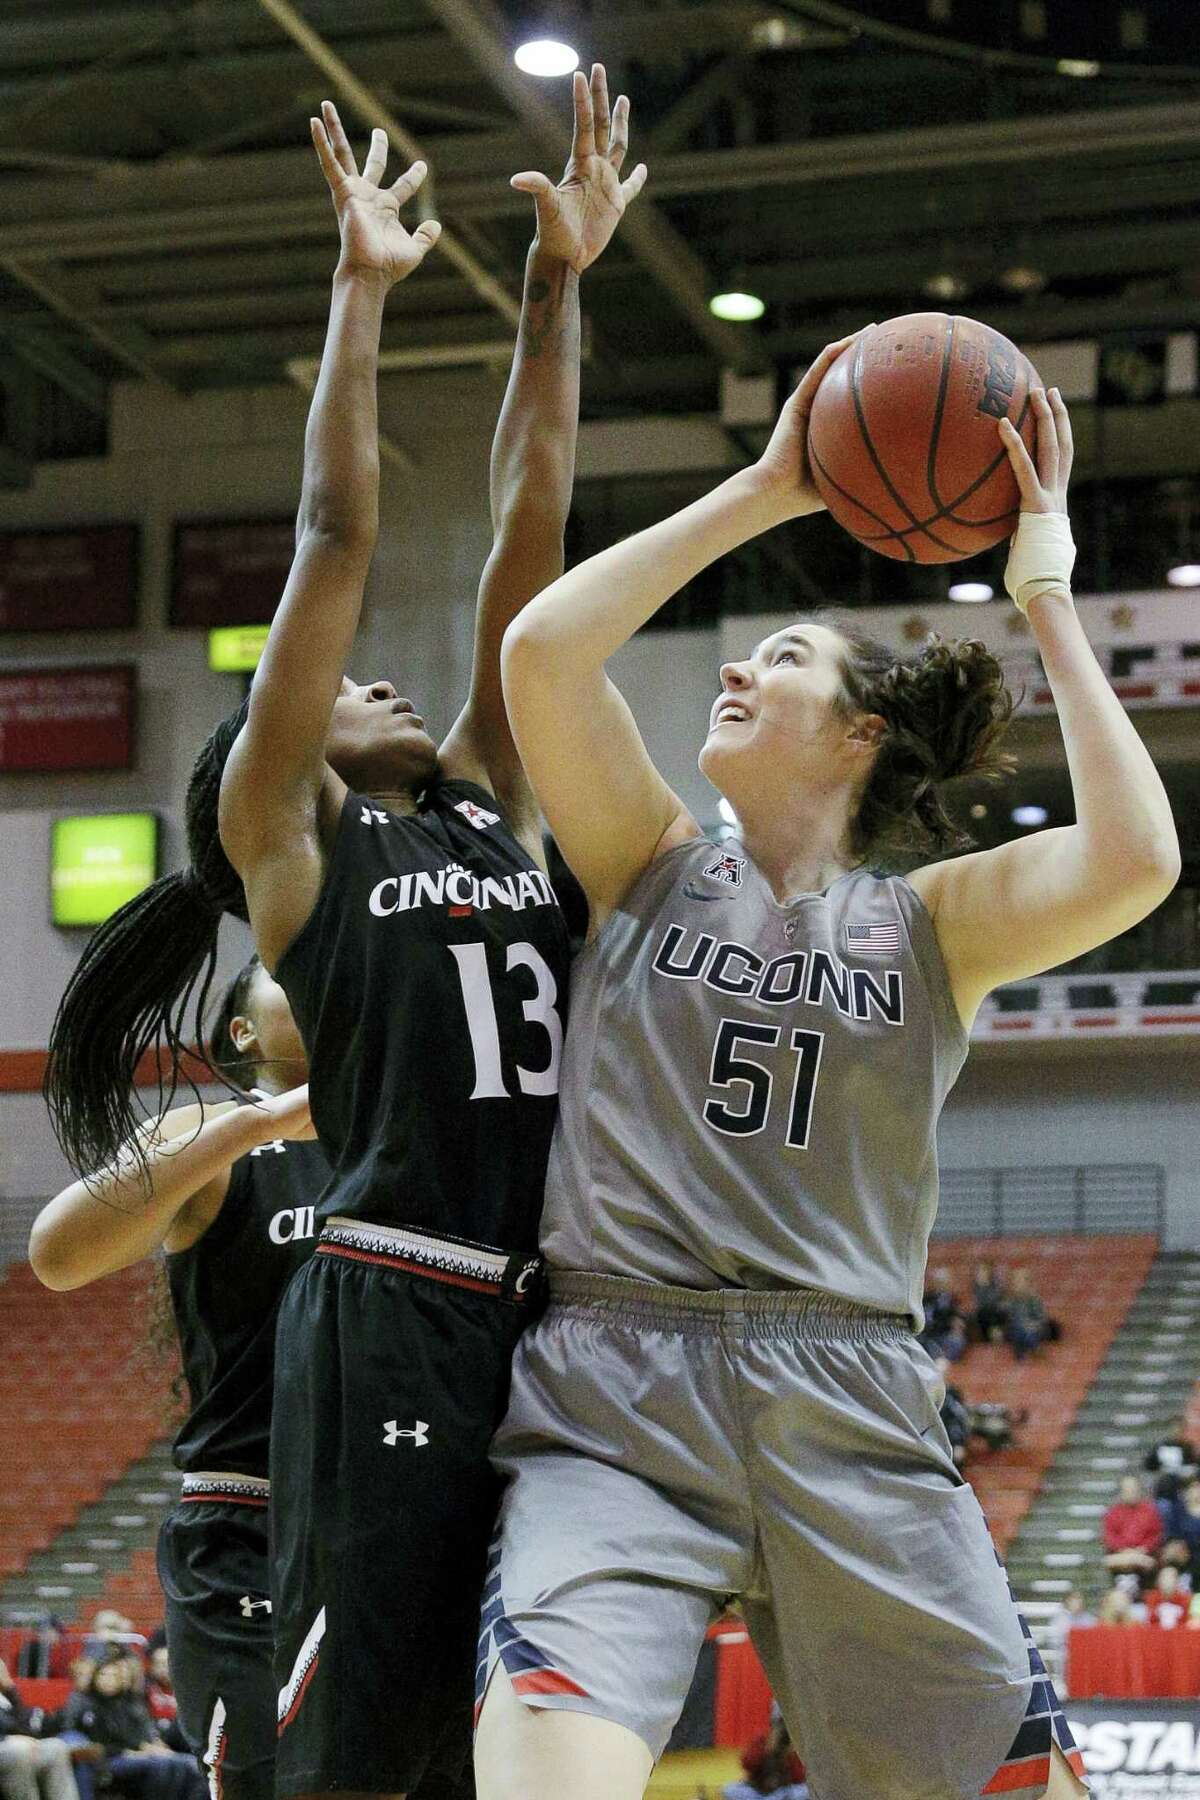 UConn's Natalie Butler had 11 points and eight rebounds in her UConn debut against Cincinnati on Dec. 30.